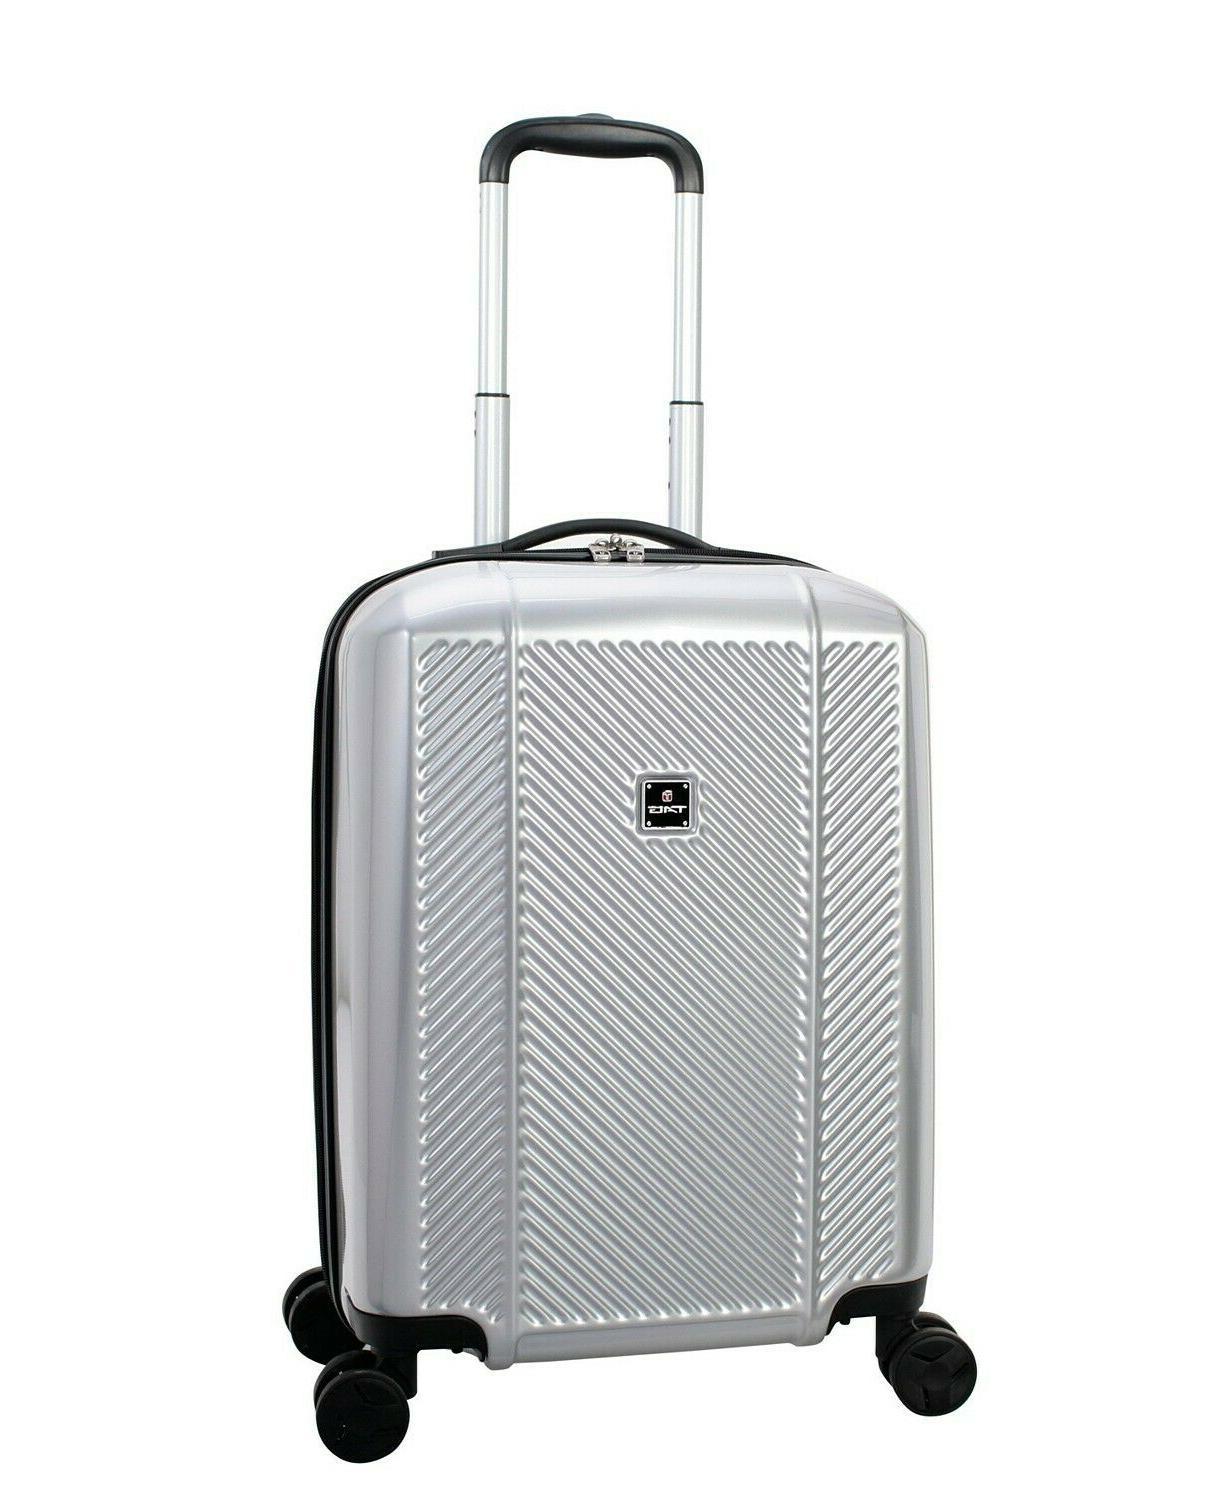 360 new spectrum 20 carry on luggage